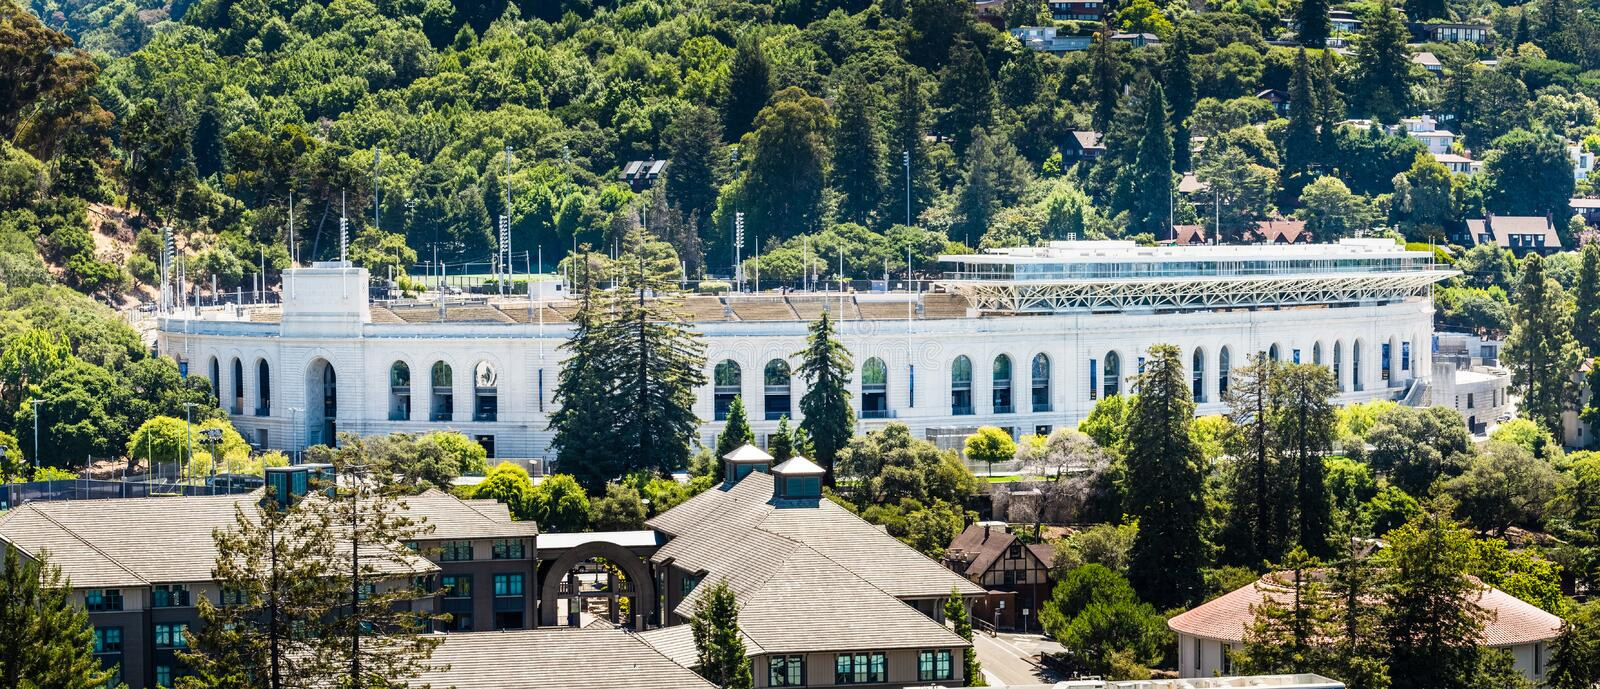 13 juillet 2019 Berkeley/CA/Etats-Unis - vue panoramique de California Memorial Stadium historique sur le campus d'Uc Berkeley, m photo stock